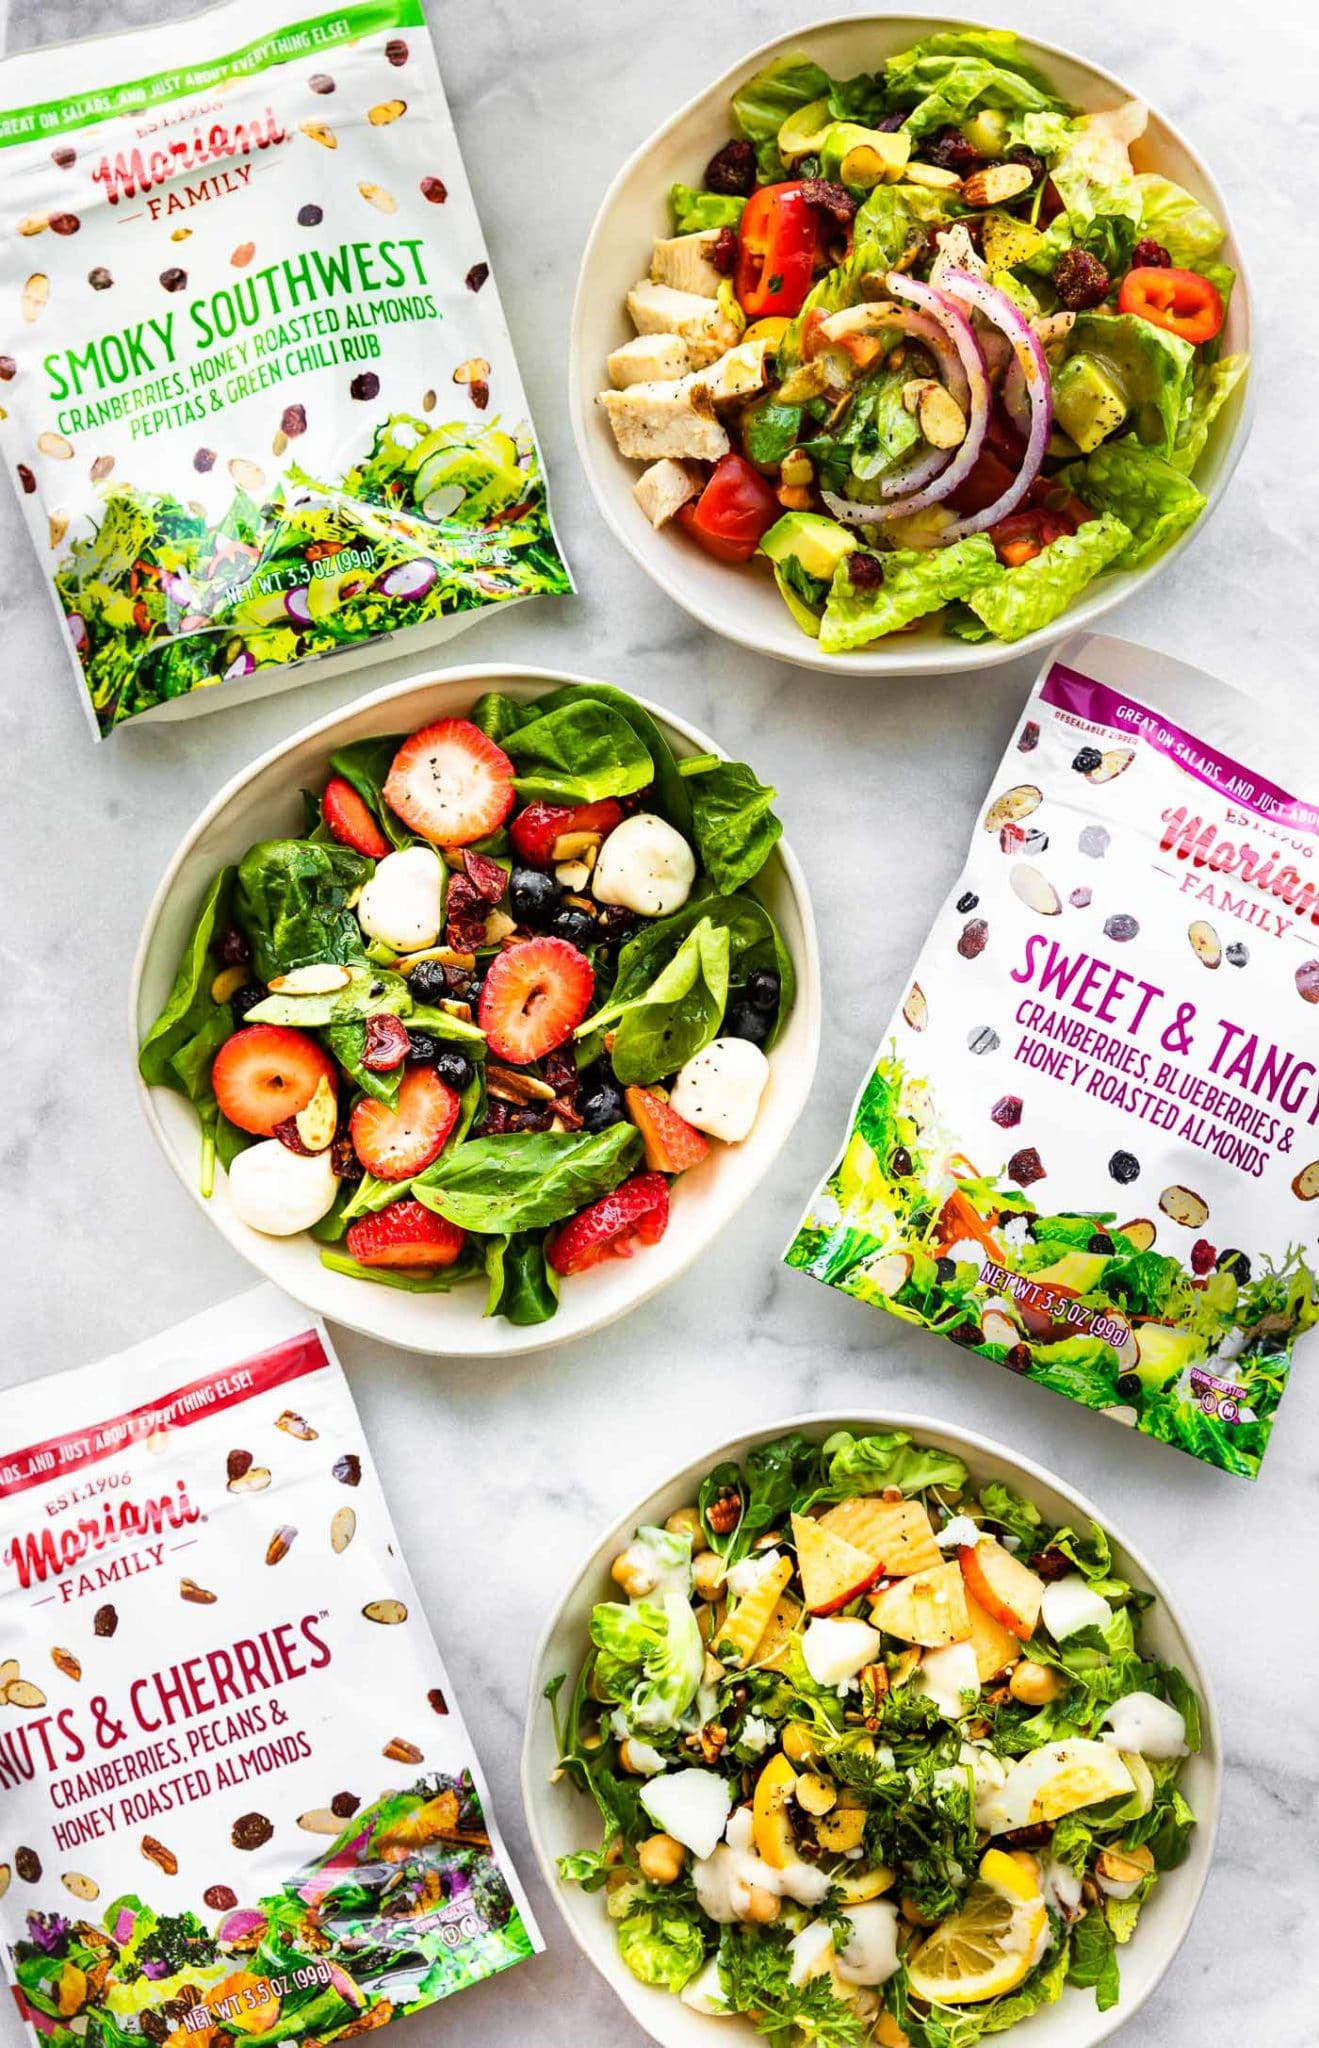 Overhead image of salad bowls and salad toppers